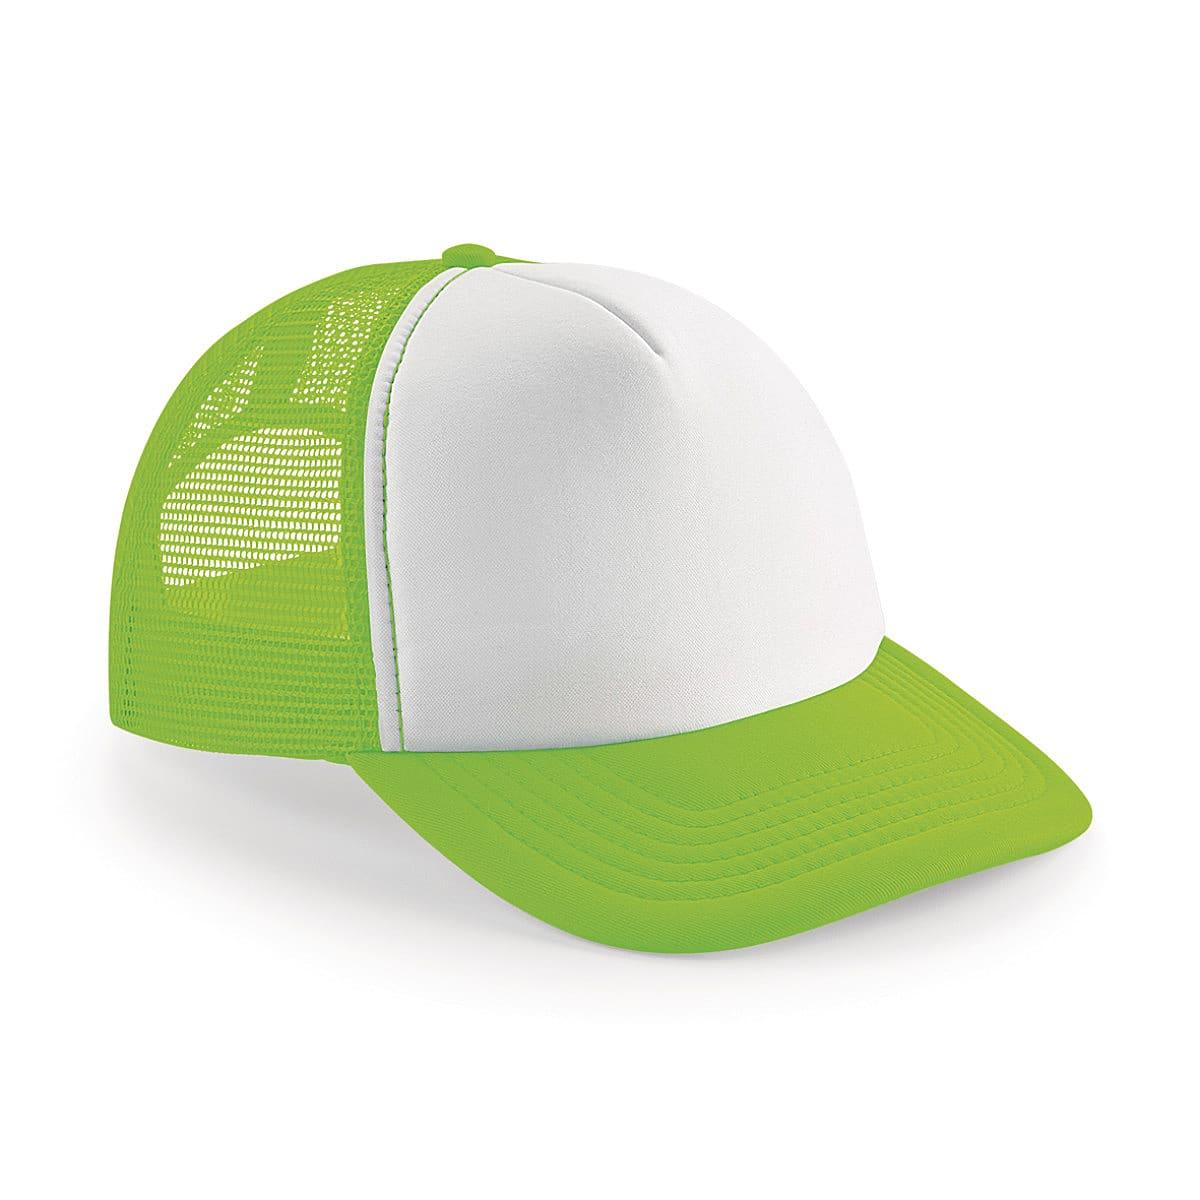 Beechfield Vintage Snapback Trucker Cap in Fluorescent Green / White (Product Code: B645)